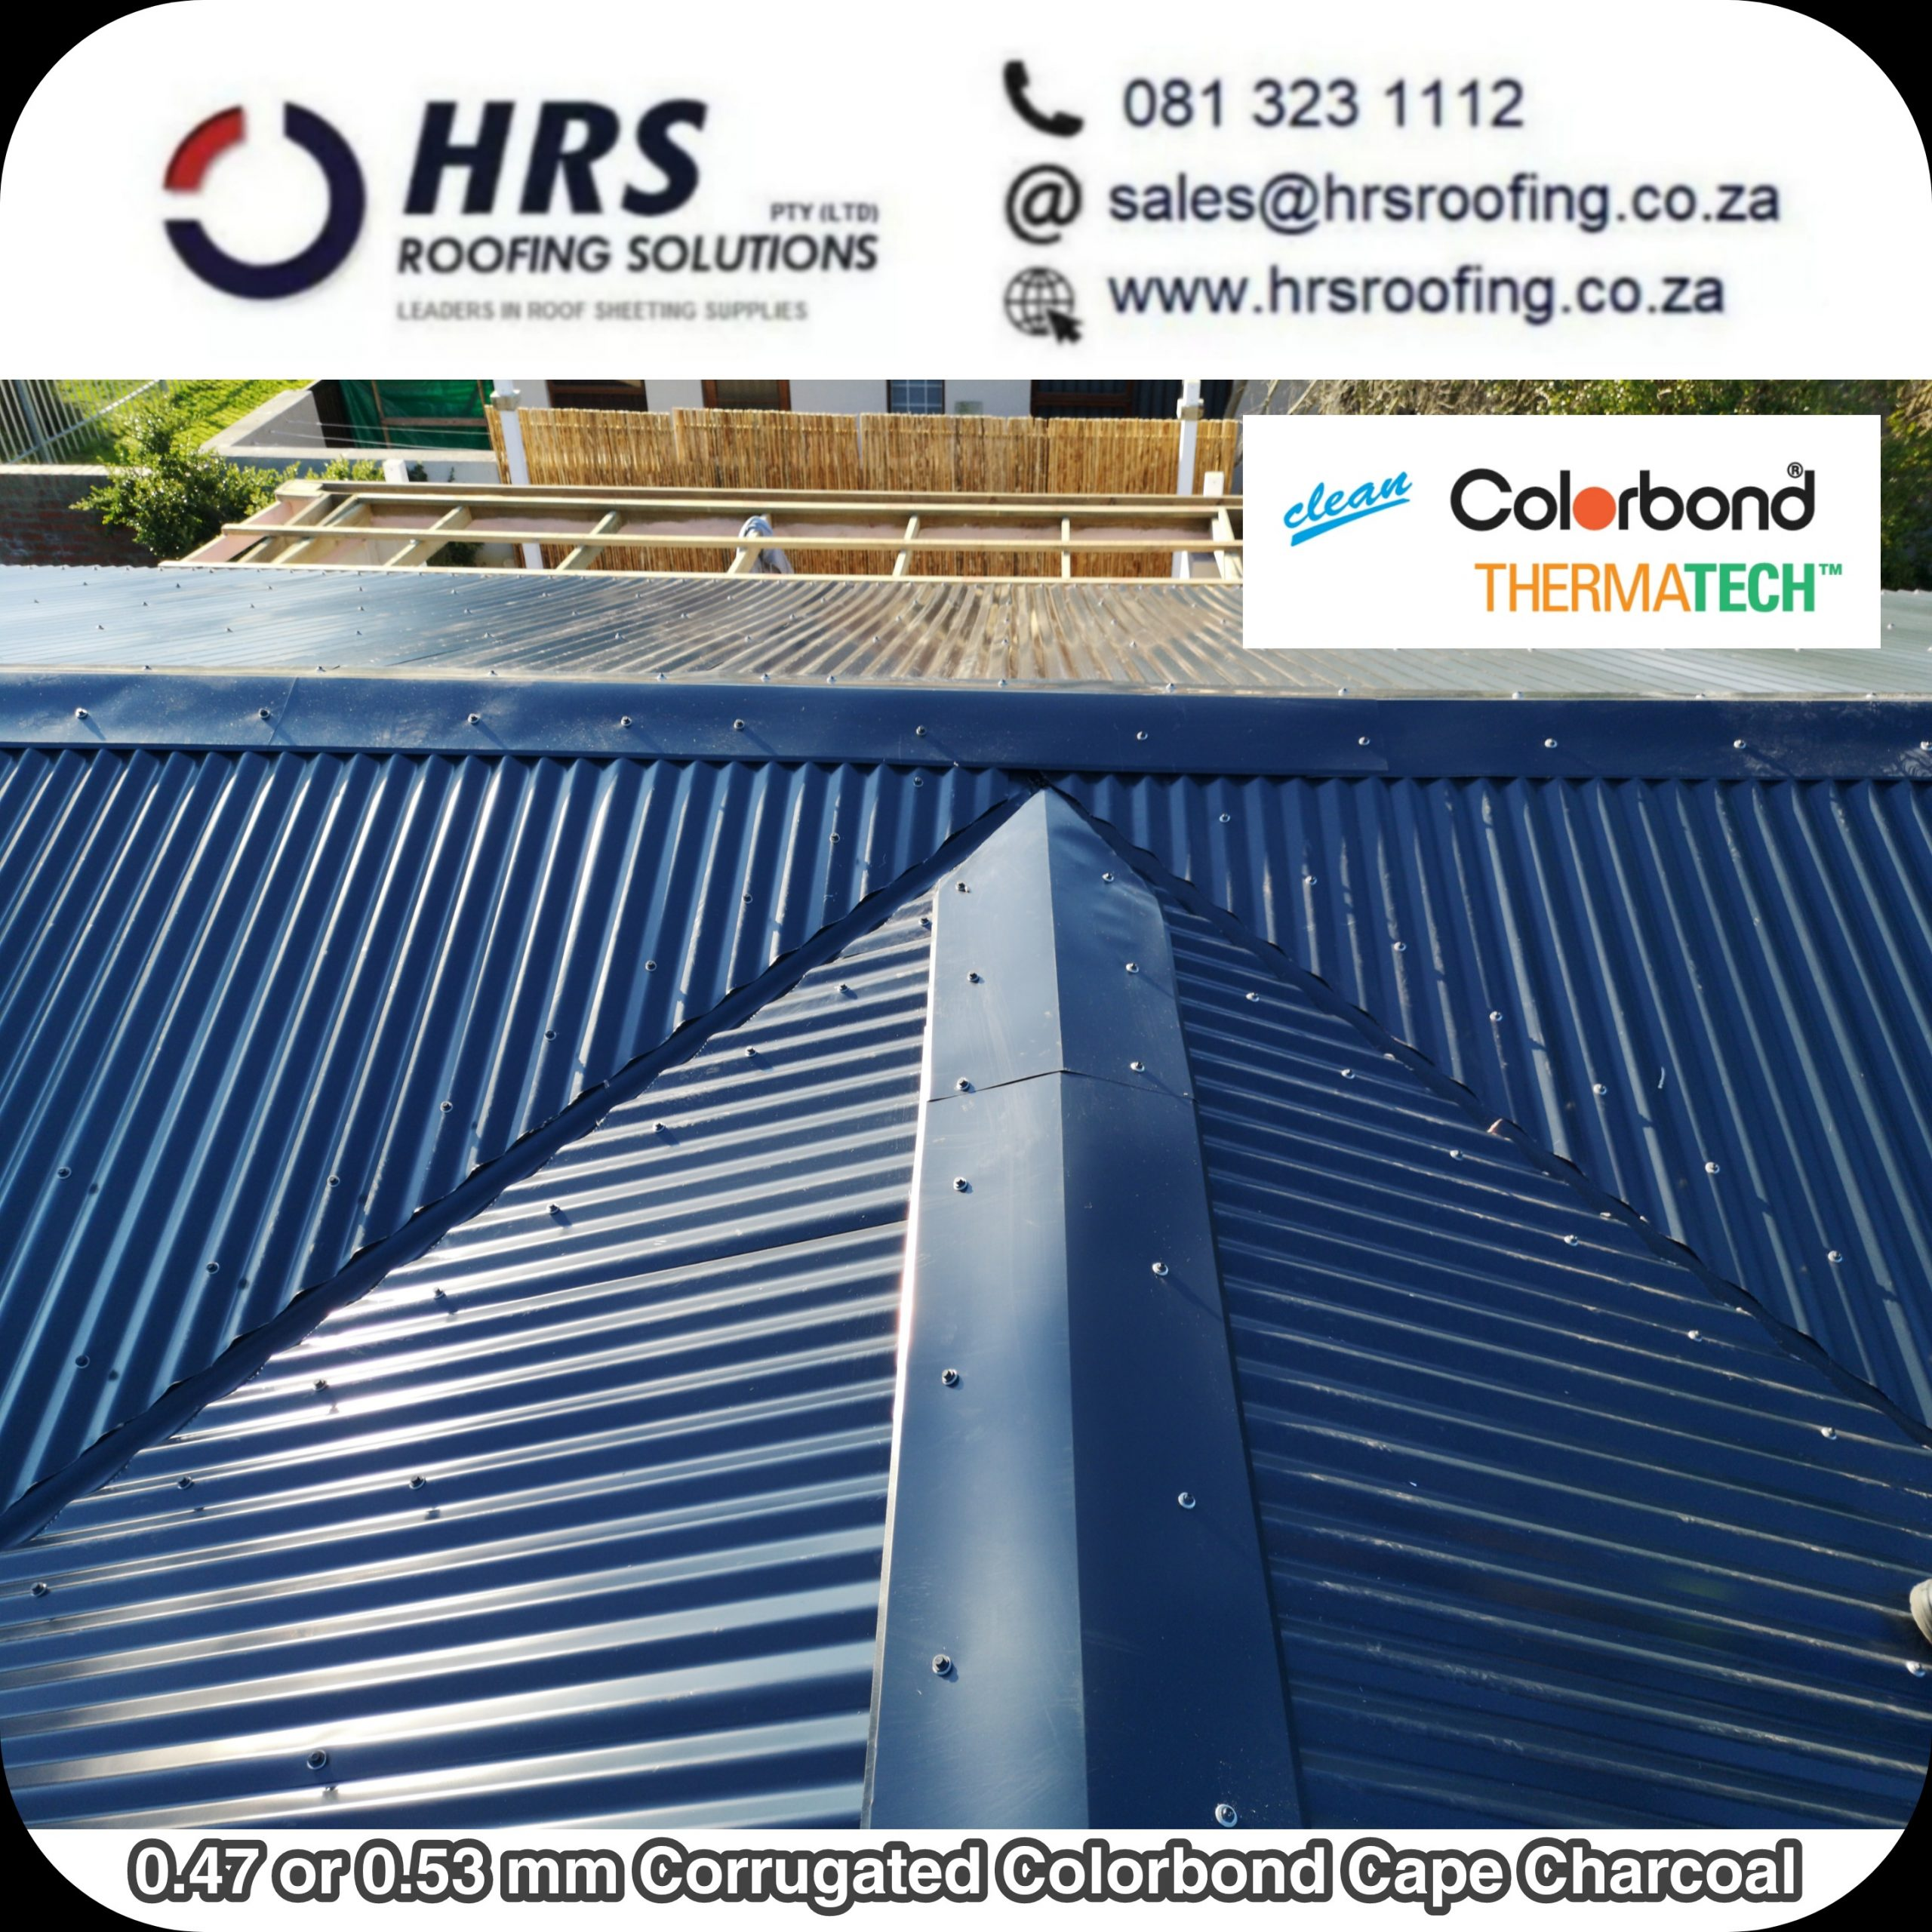 ibr corrugated colorbond Charcoal roof sheets paardein eiland paarl table view scaled - Roofing Gallery